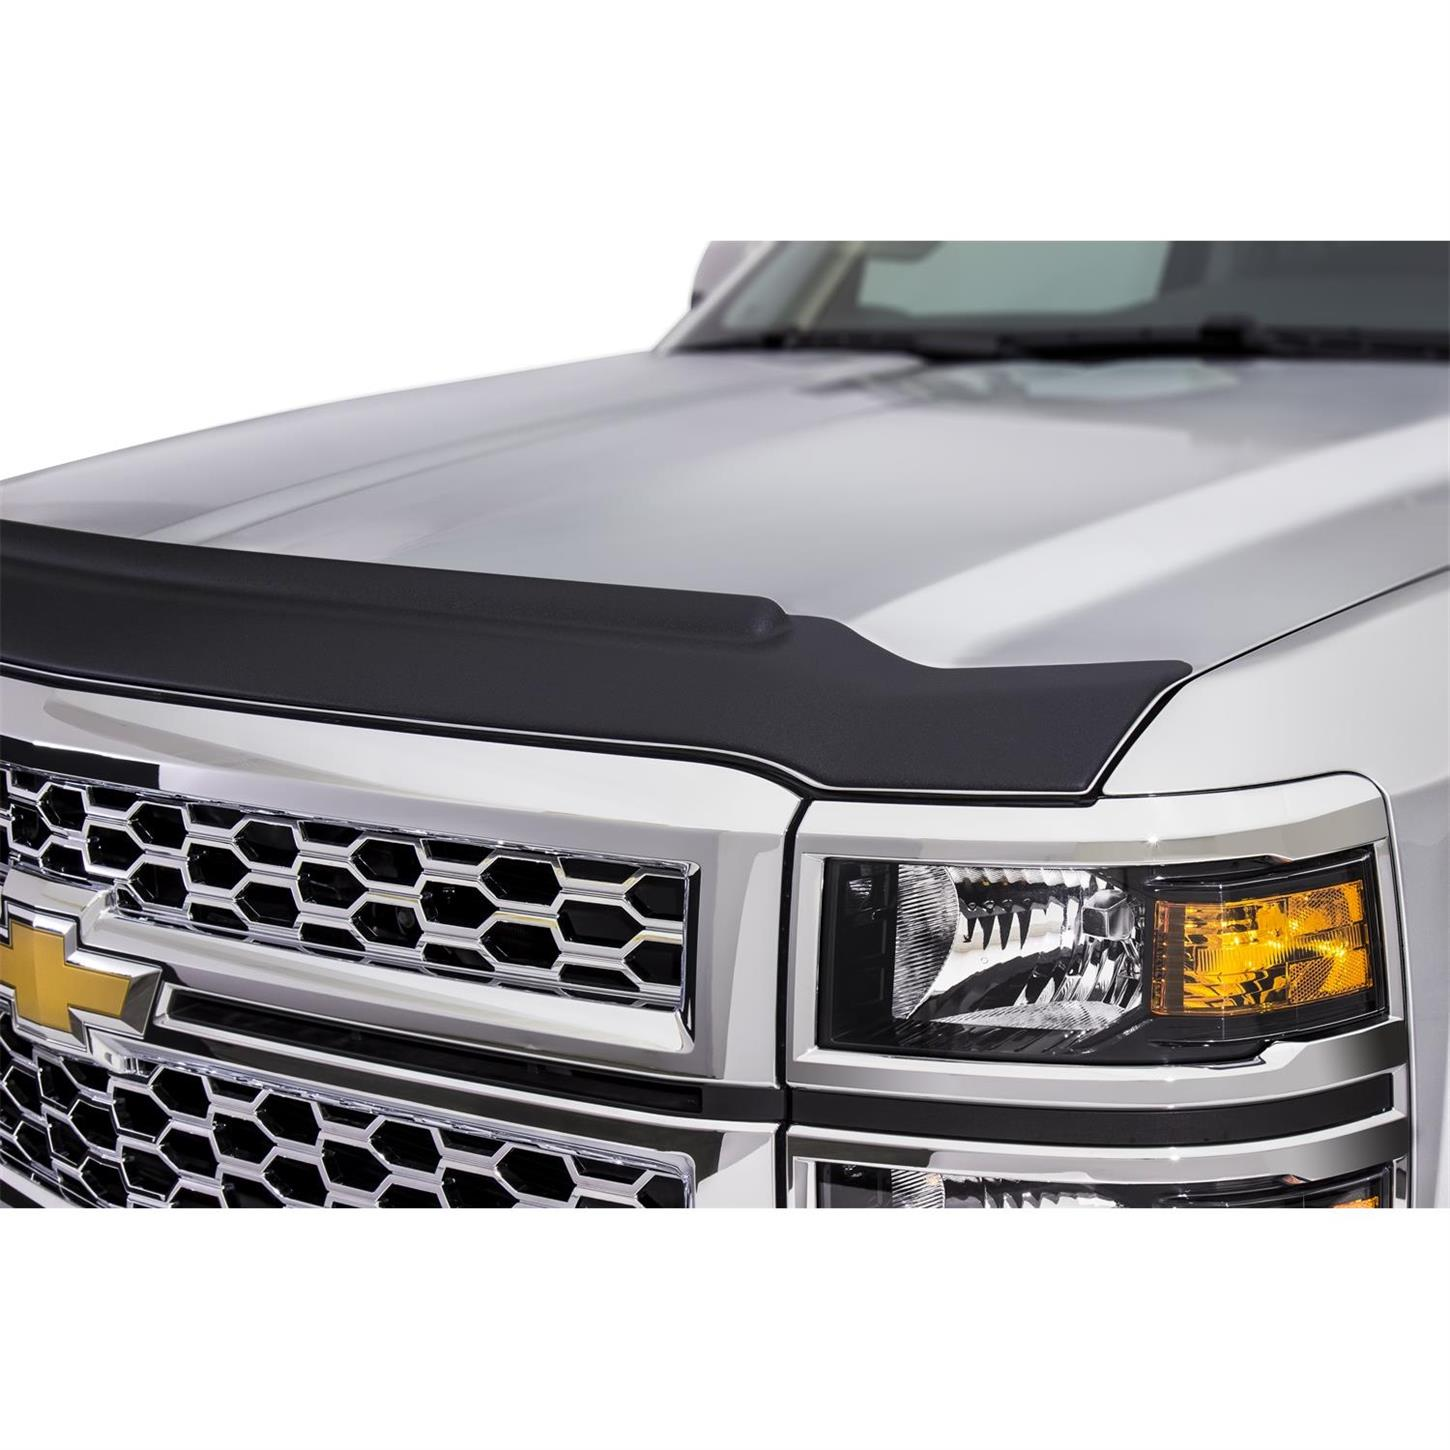 Lund Smoke Hood Defender Fits 2009-2017 Dodge Ram 1500